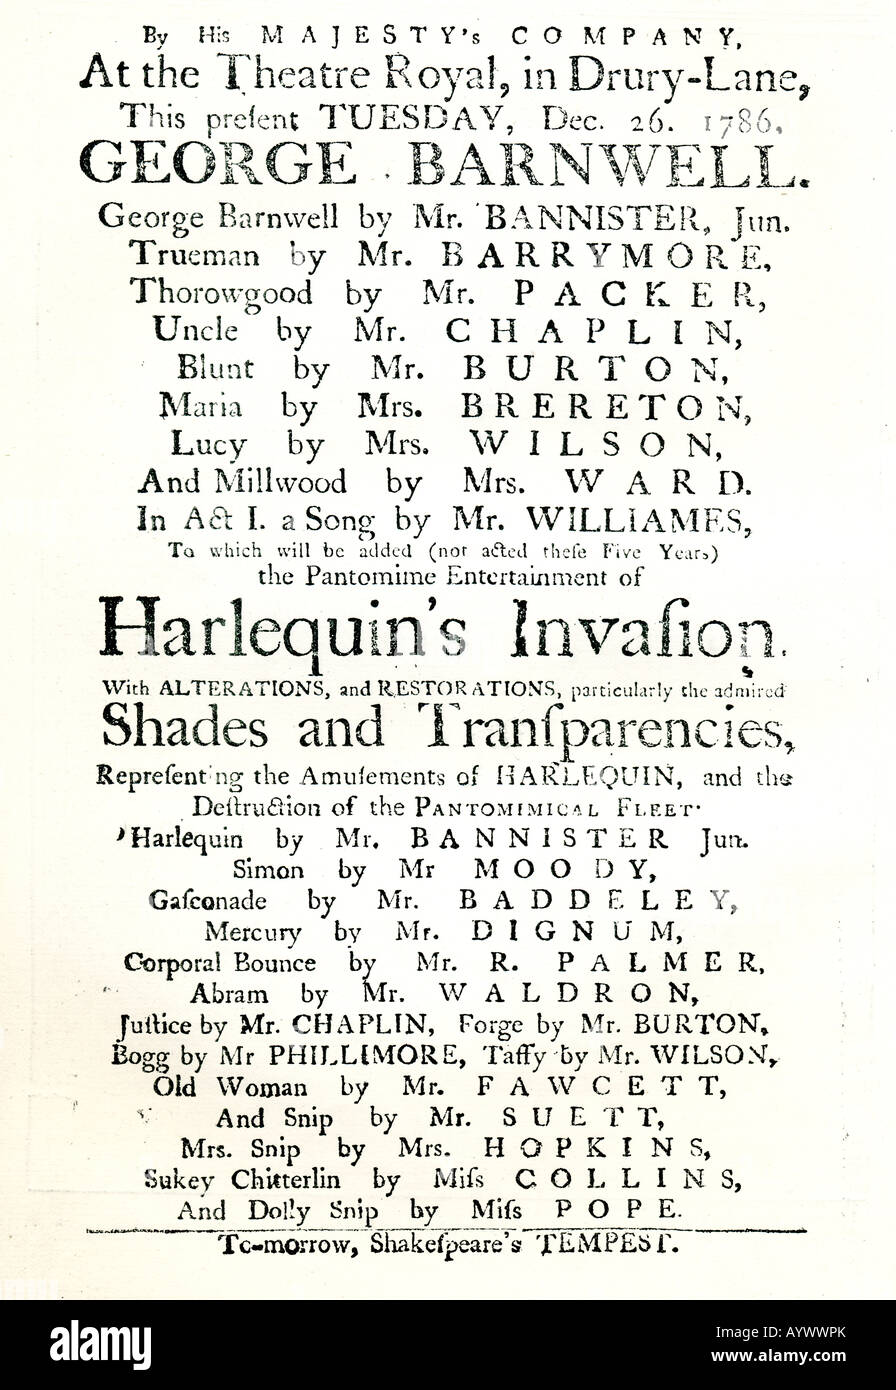 Fascimile of Drury Lane Theatre Playbill of 1786 published in 1886 in the Old Drury Lane Christmas Annual Magazine - Stock Image